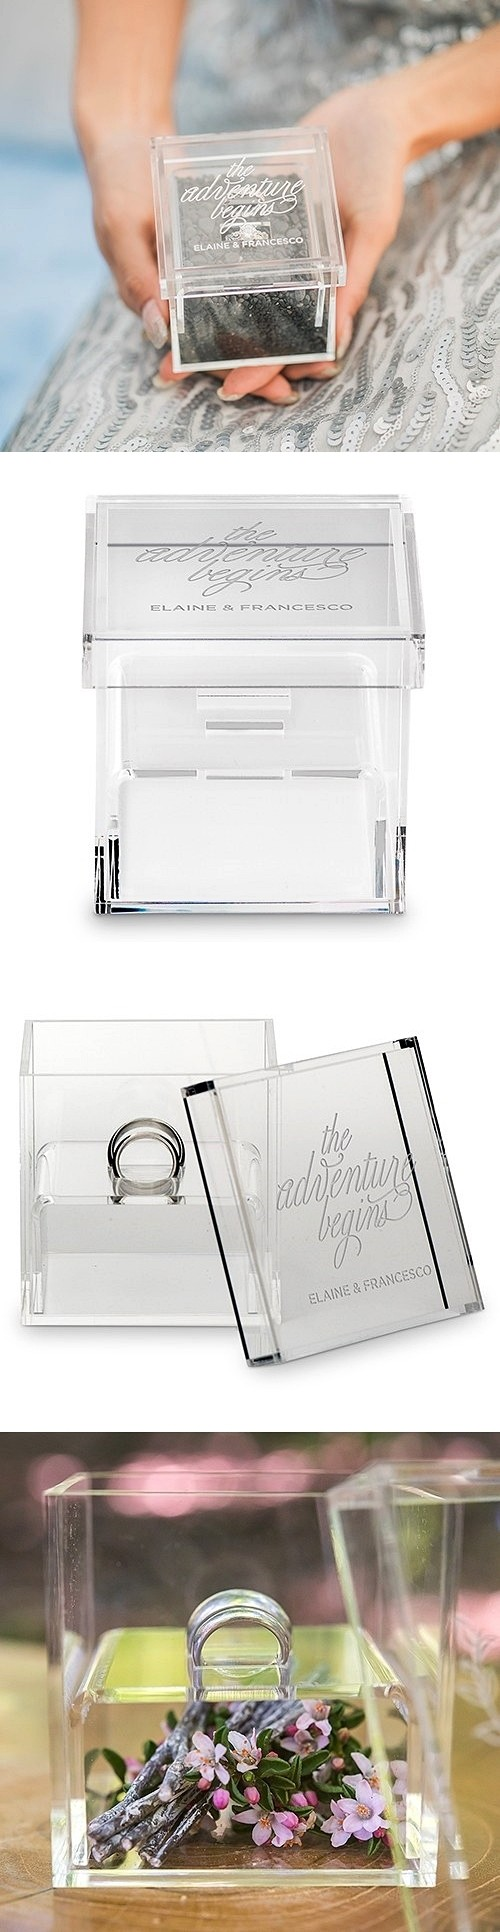 """The Adventure Begins"" Personalized Acrylic Wedding Ring Box"